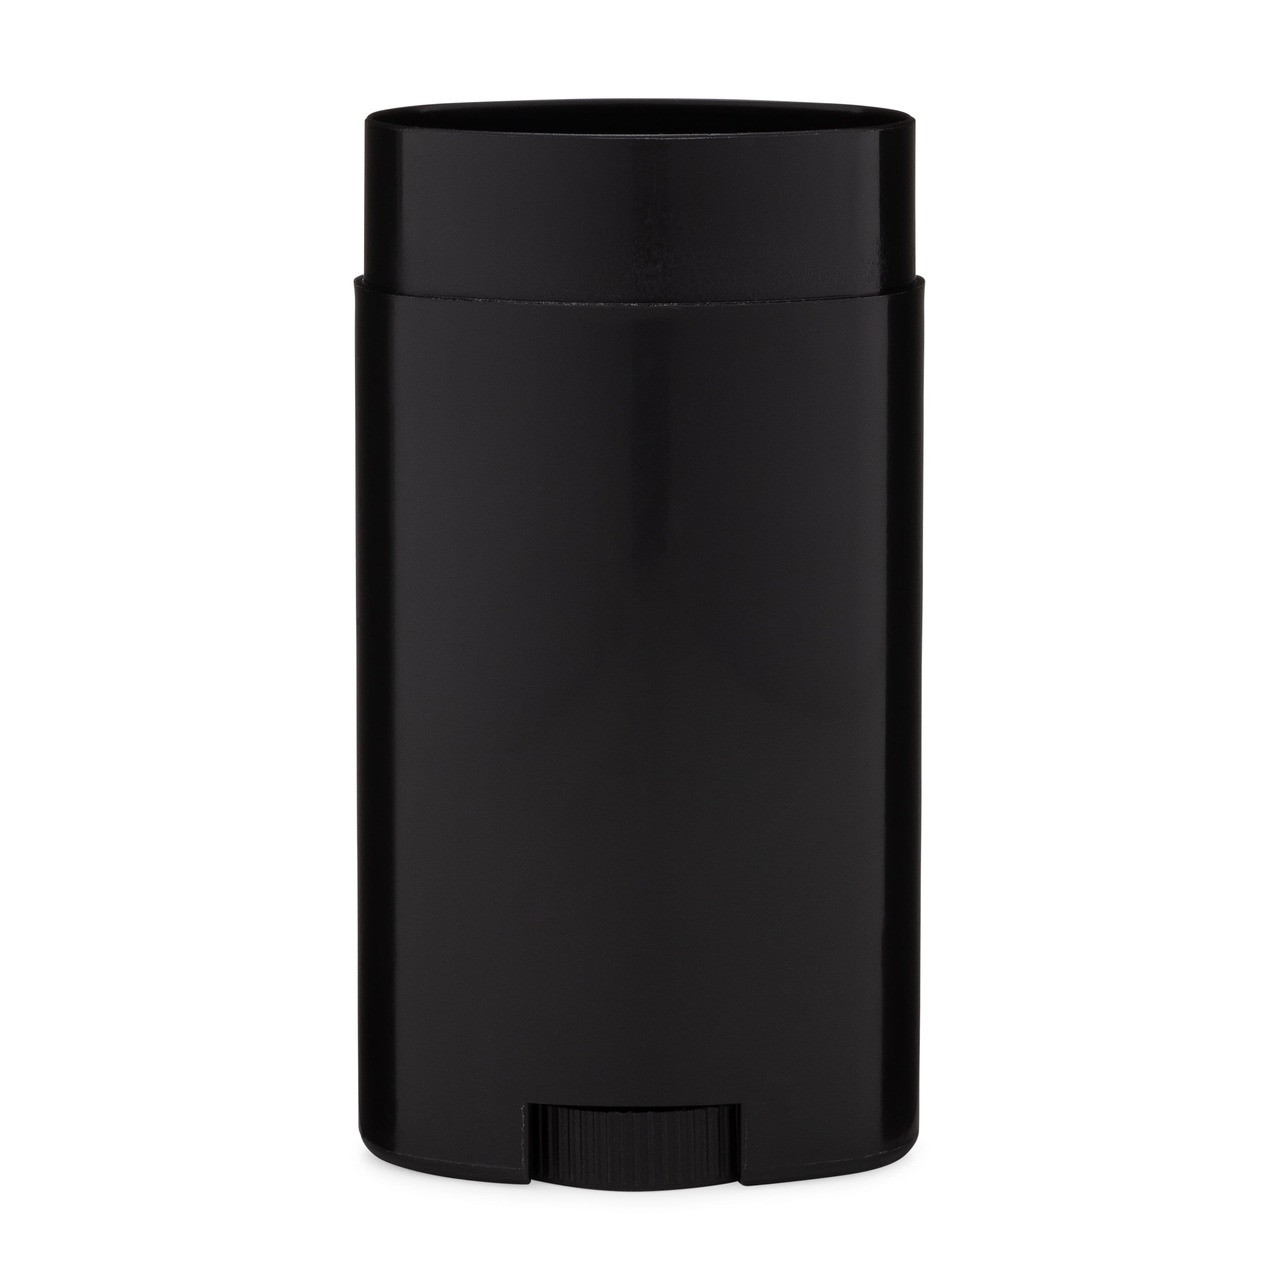 2 65 oz Black PP Plastic Deodorant Stick (Cap Not Included) - 1124B01-BBLK